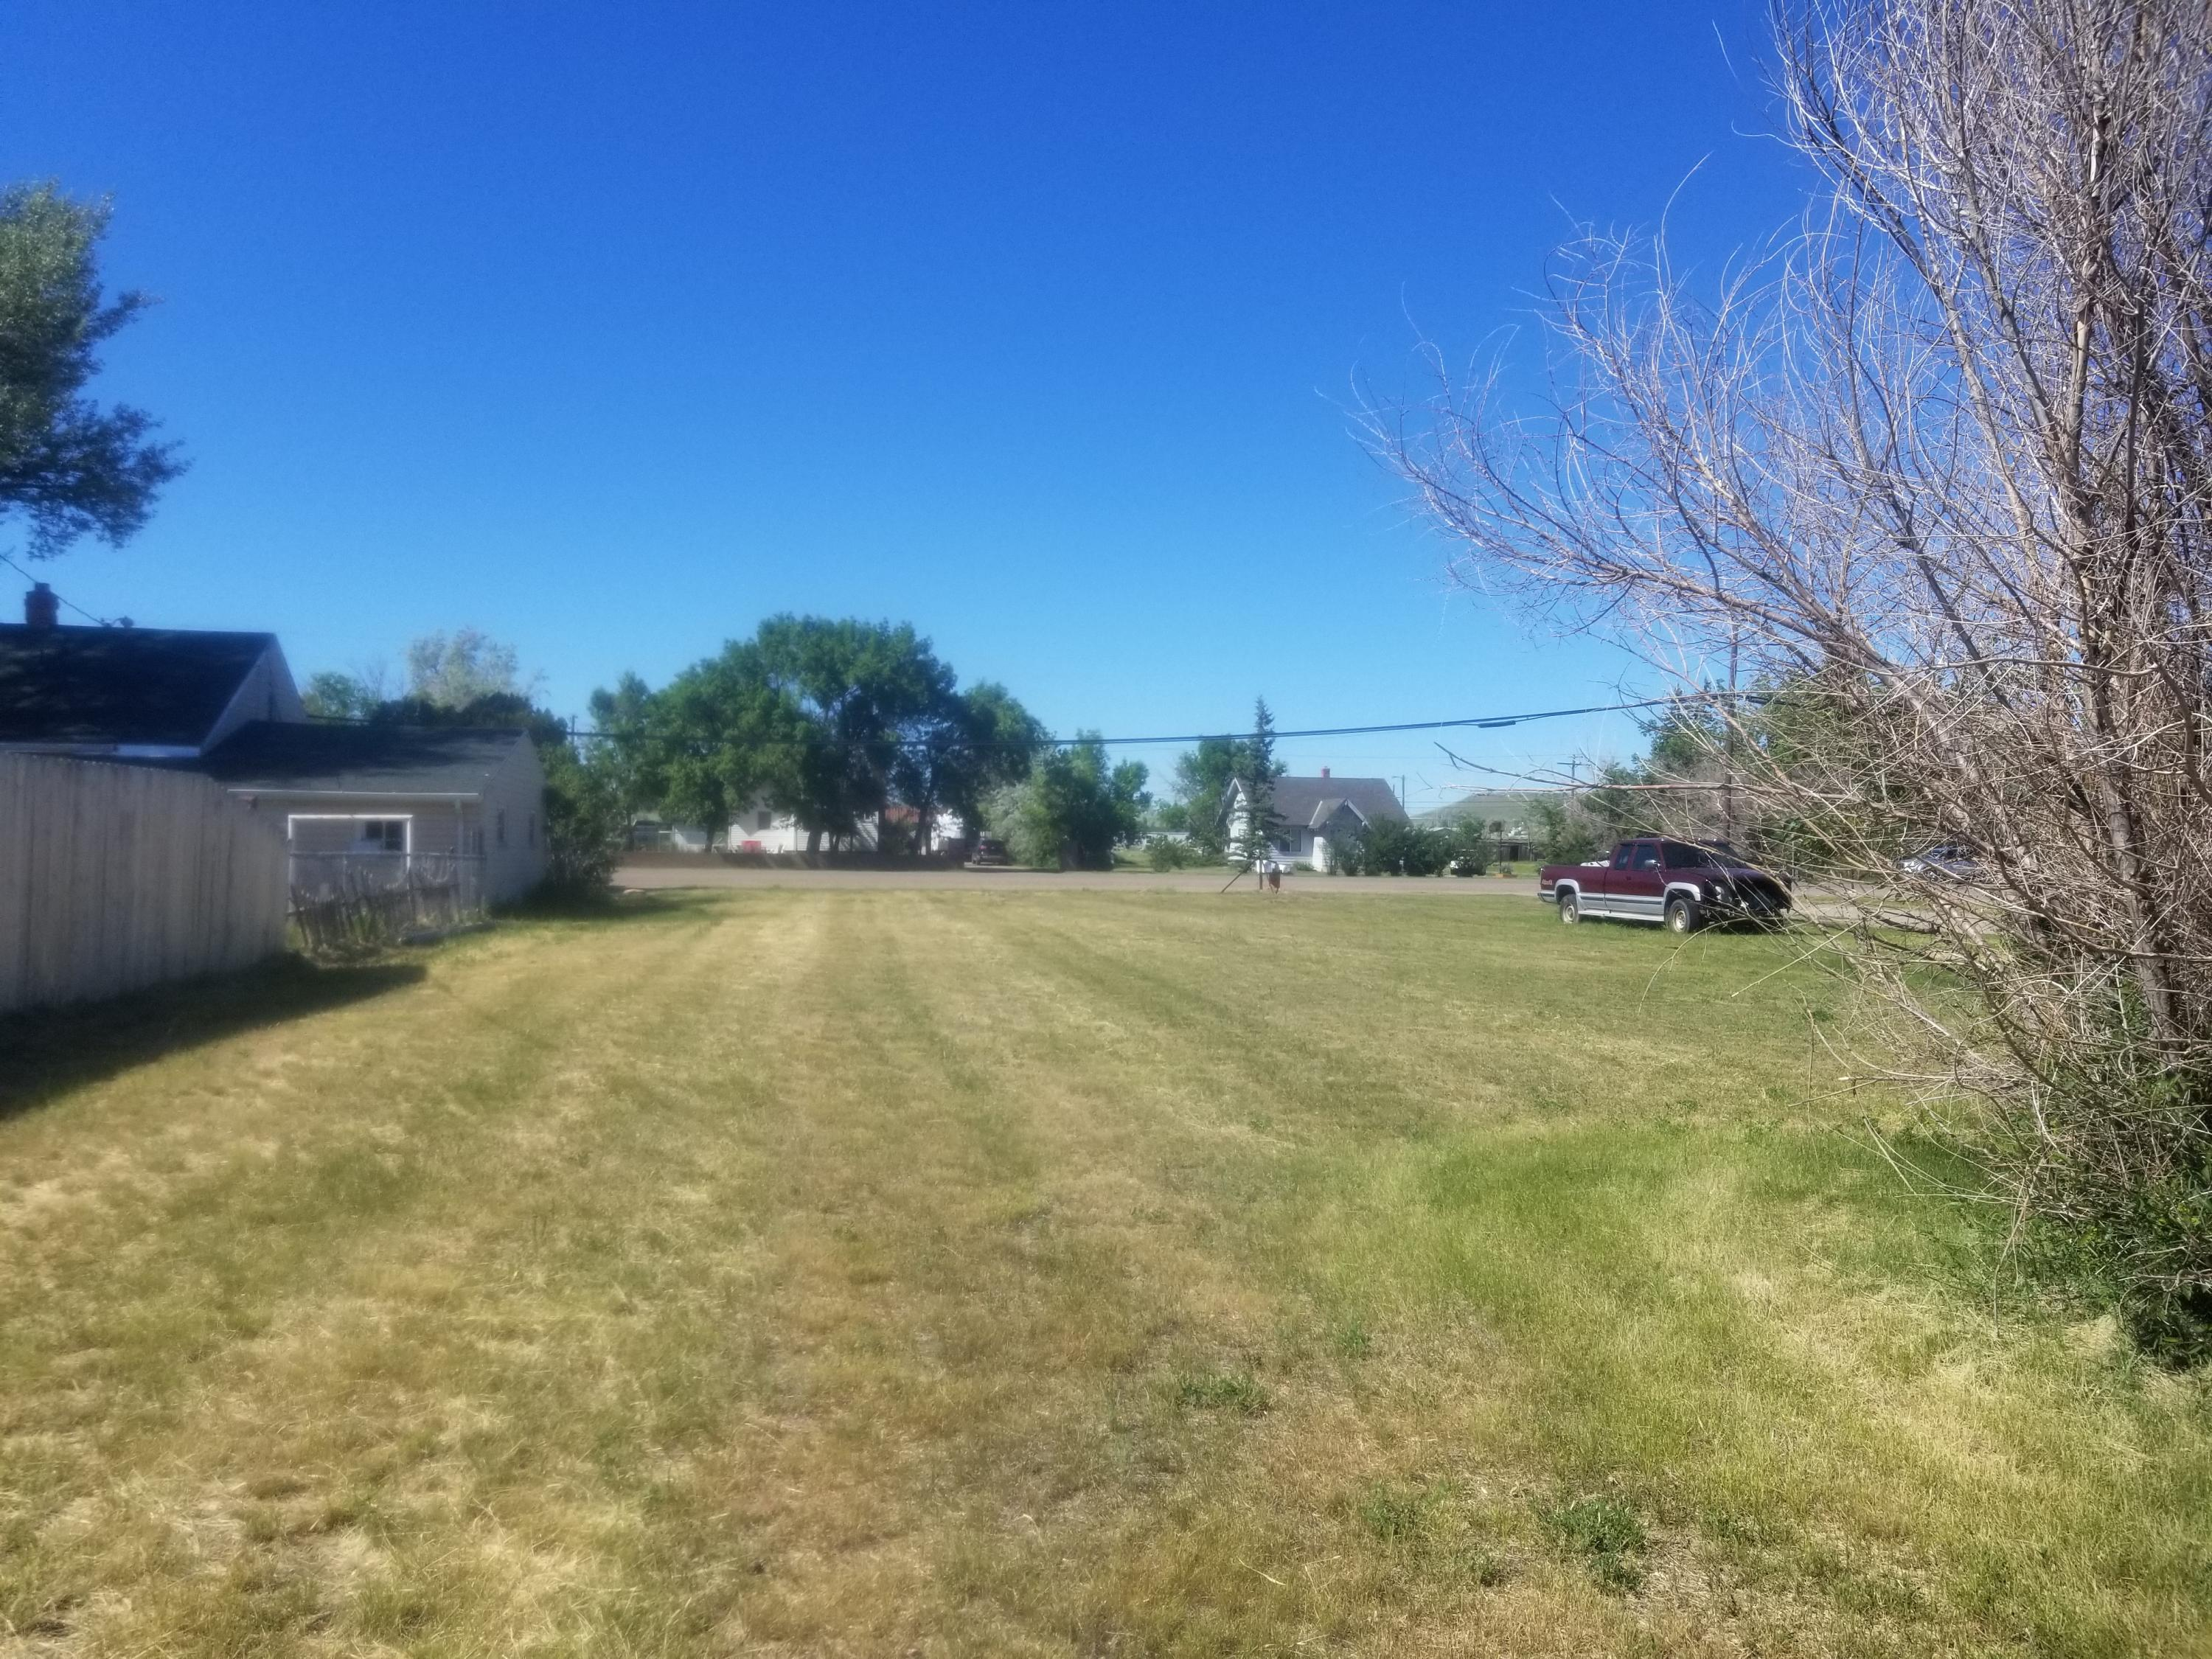 City amenities, but country feel! Great FLAT building site! Build your home on this nice property.  Are you looking to place a manufactured home on permanent foundation with a Detached garage/shop? Electricity, Gas, Water and Sewer are to edge of property. Bring your chickens and/or goats. Call Debbie Dodd at 406-788-1886 or your Real Estate Professional.